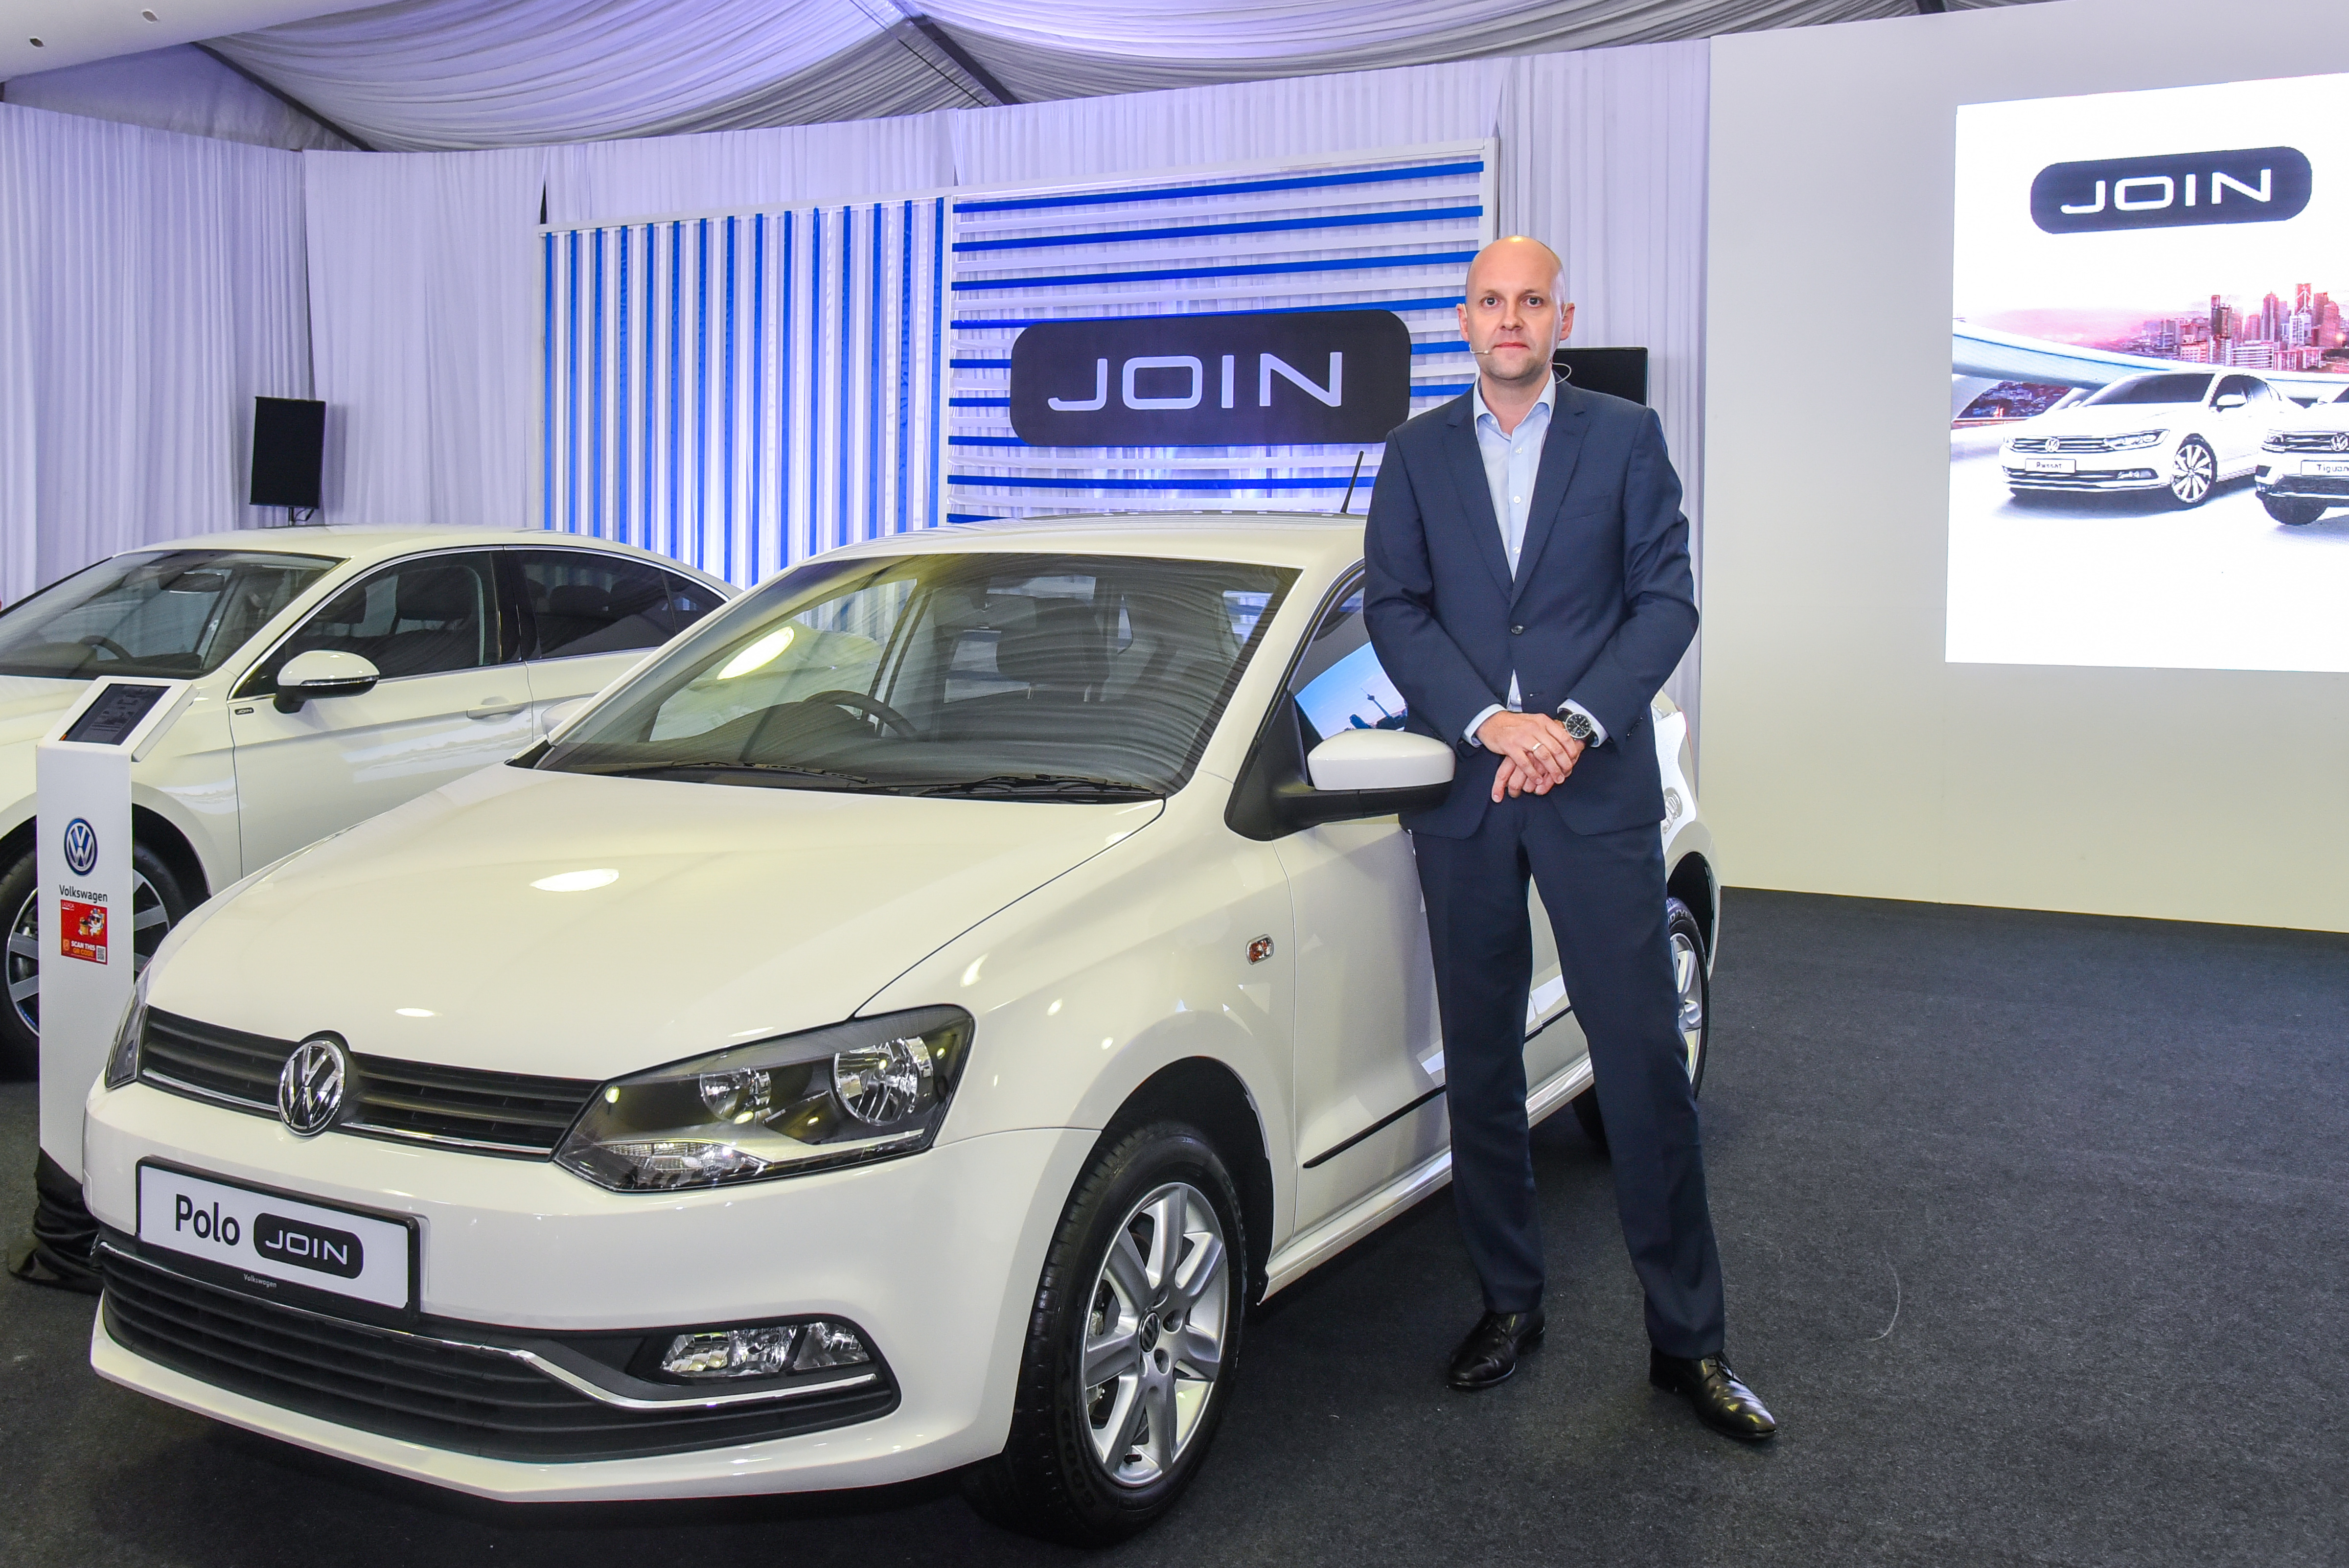 Volkswagen Malaysia Unveils Join Range With 25 Units Exclusively